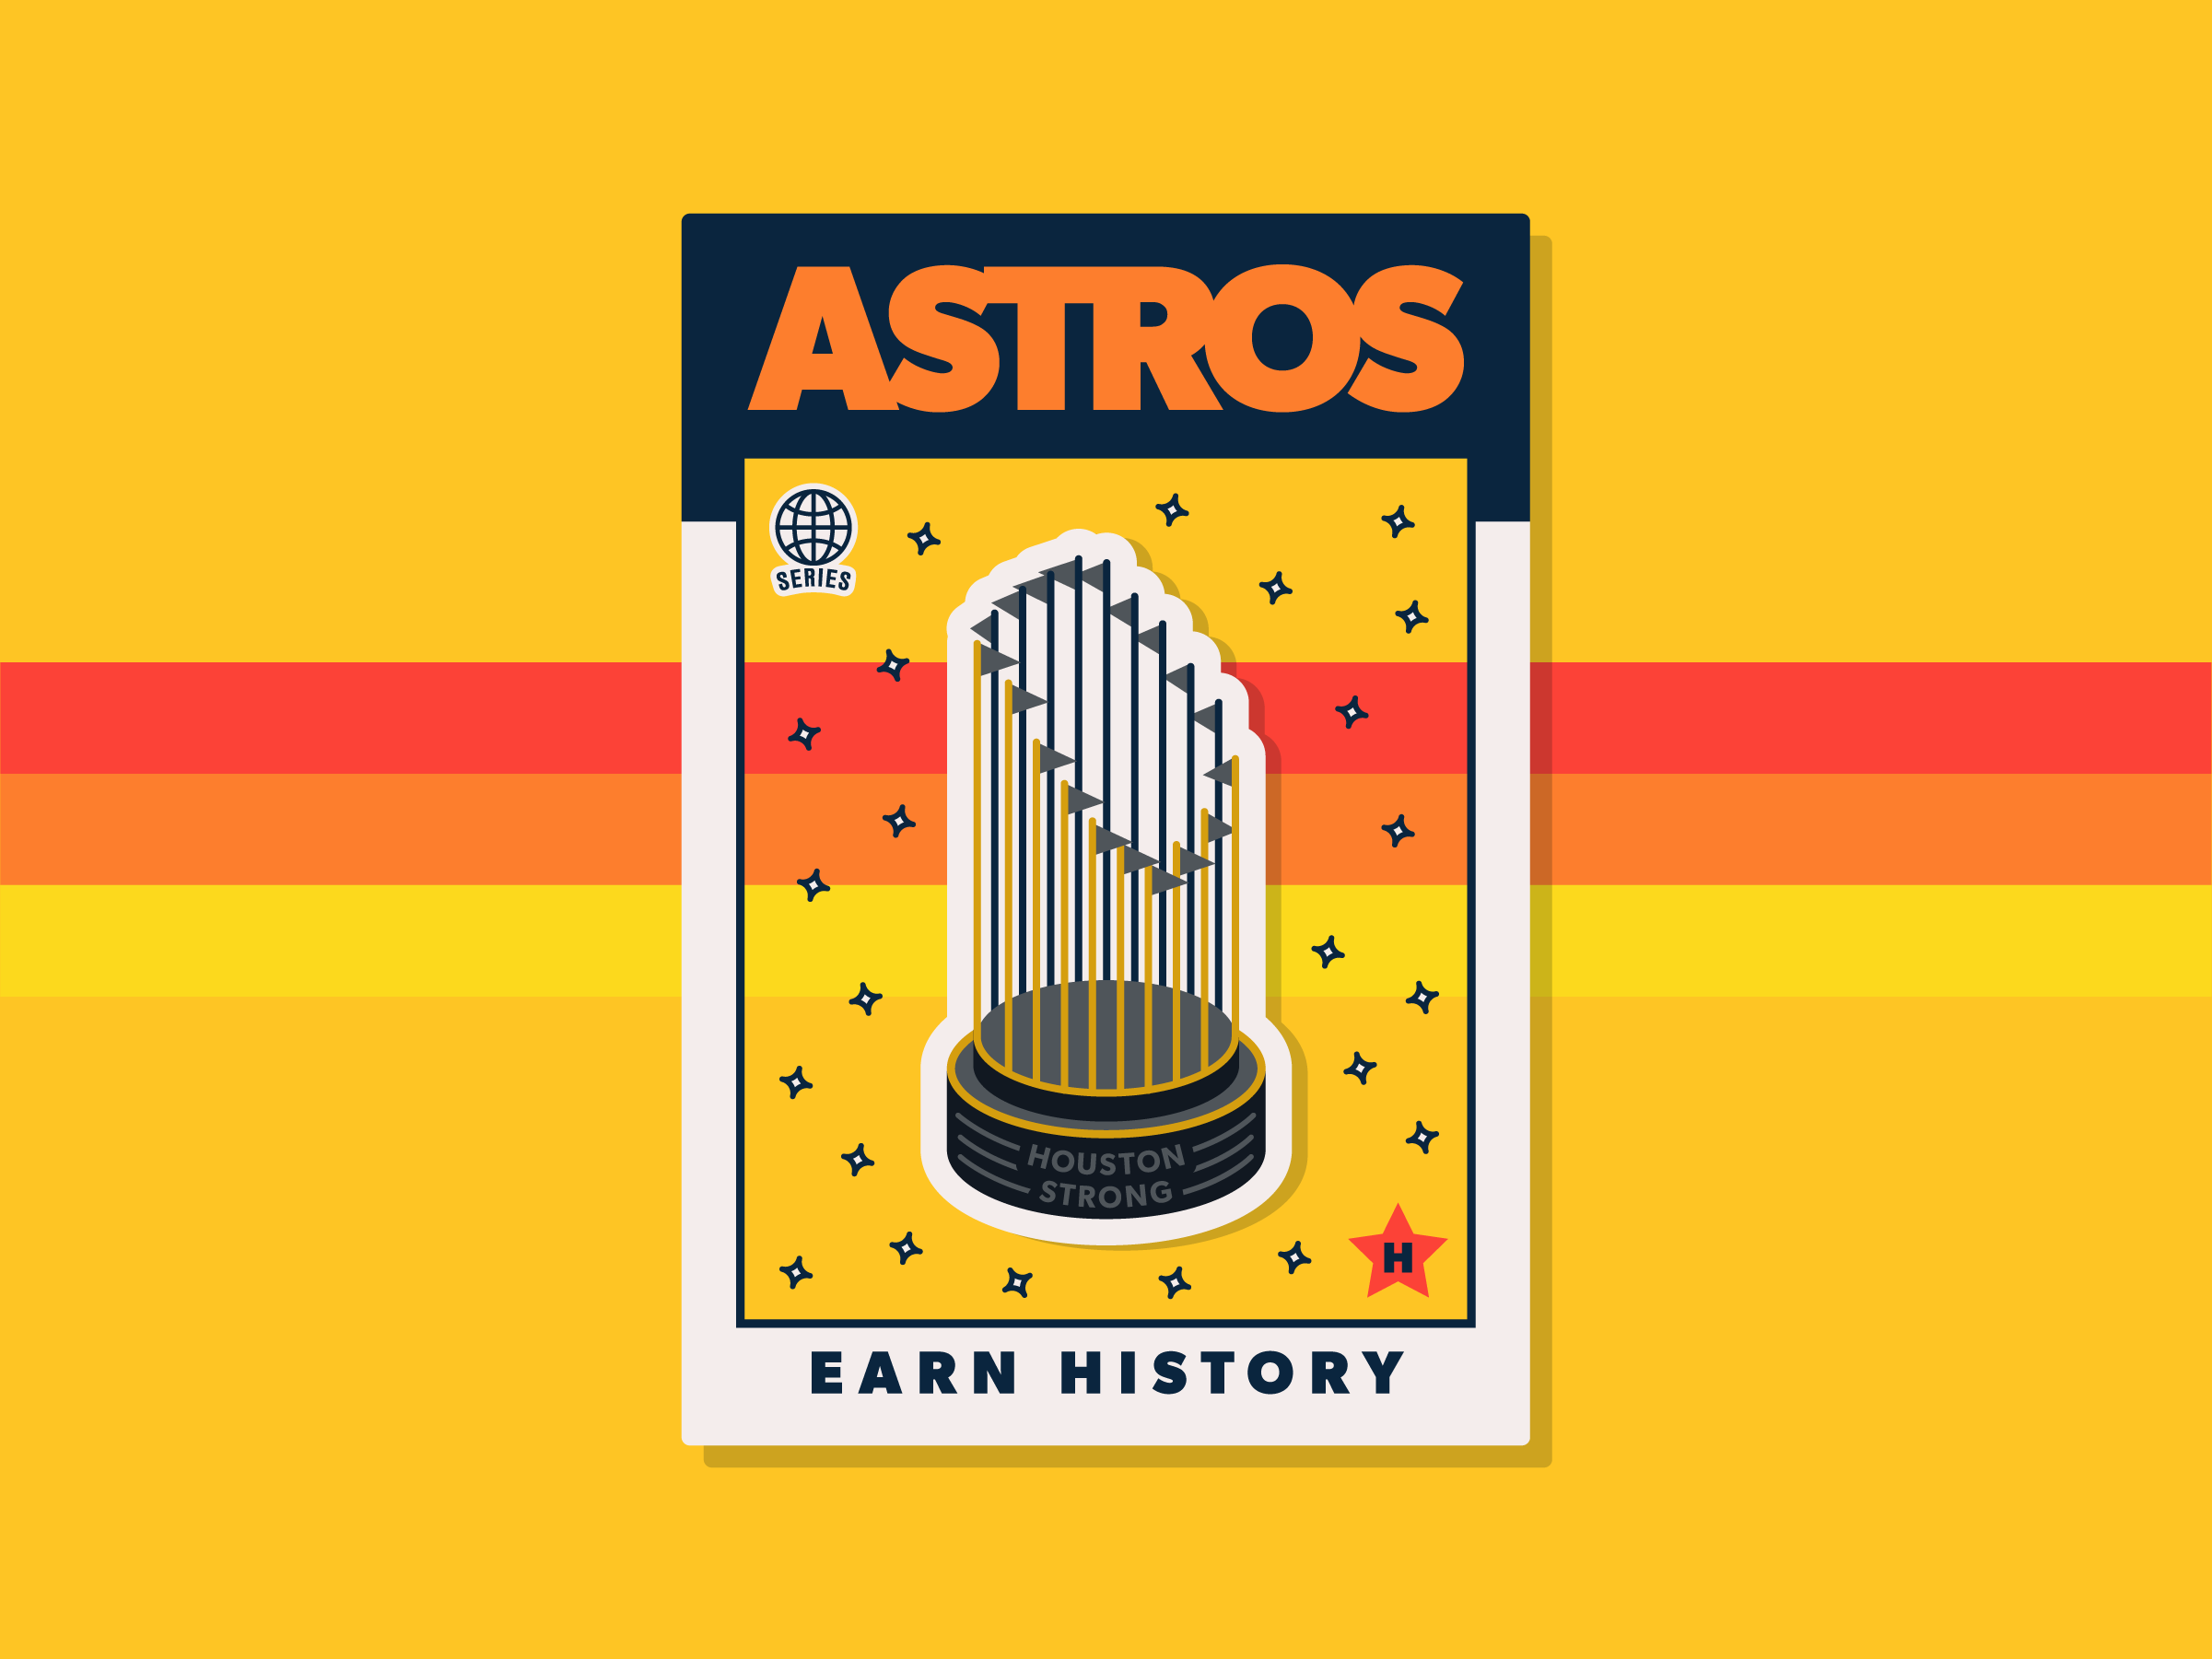 Astros_07.png